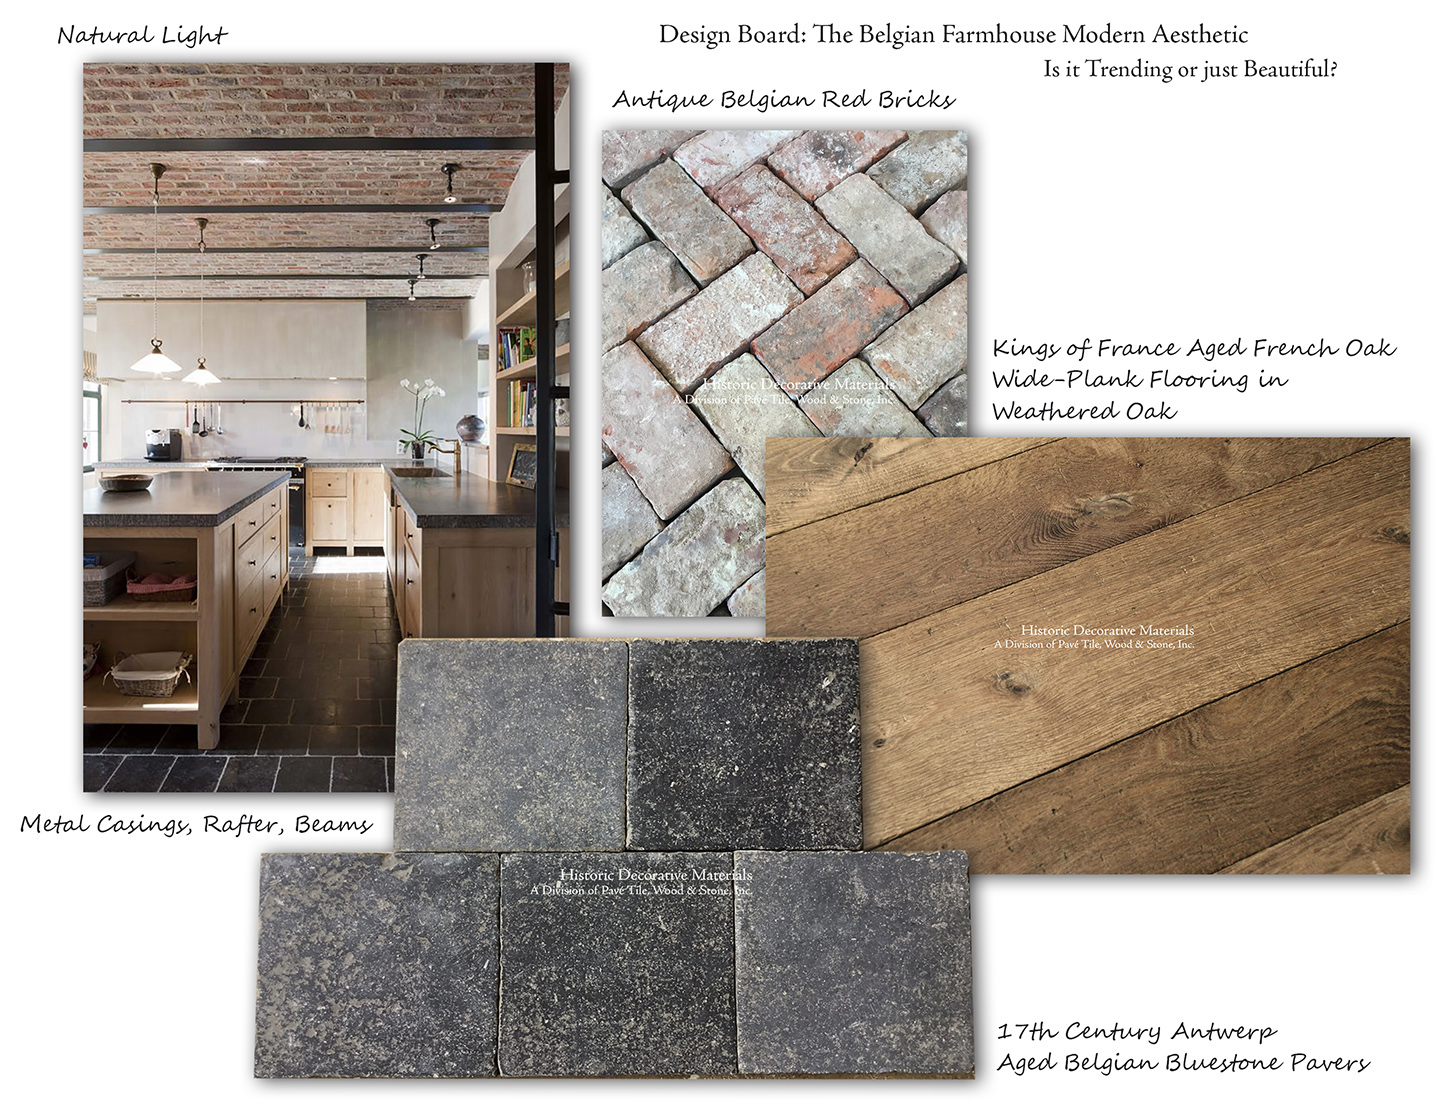 Aesthetic Paver Stone The Cobblestone Path - The Pavé Tile, Wood u0026 Stone Blog: Design Board: The  Belgian Farmhouse Modern Aesthetic